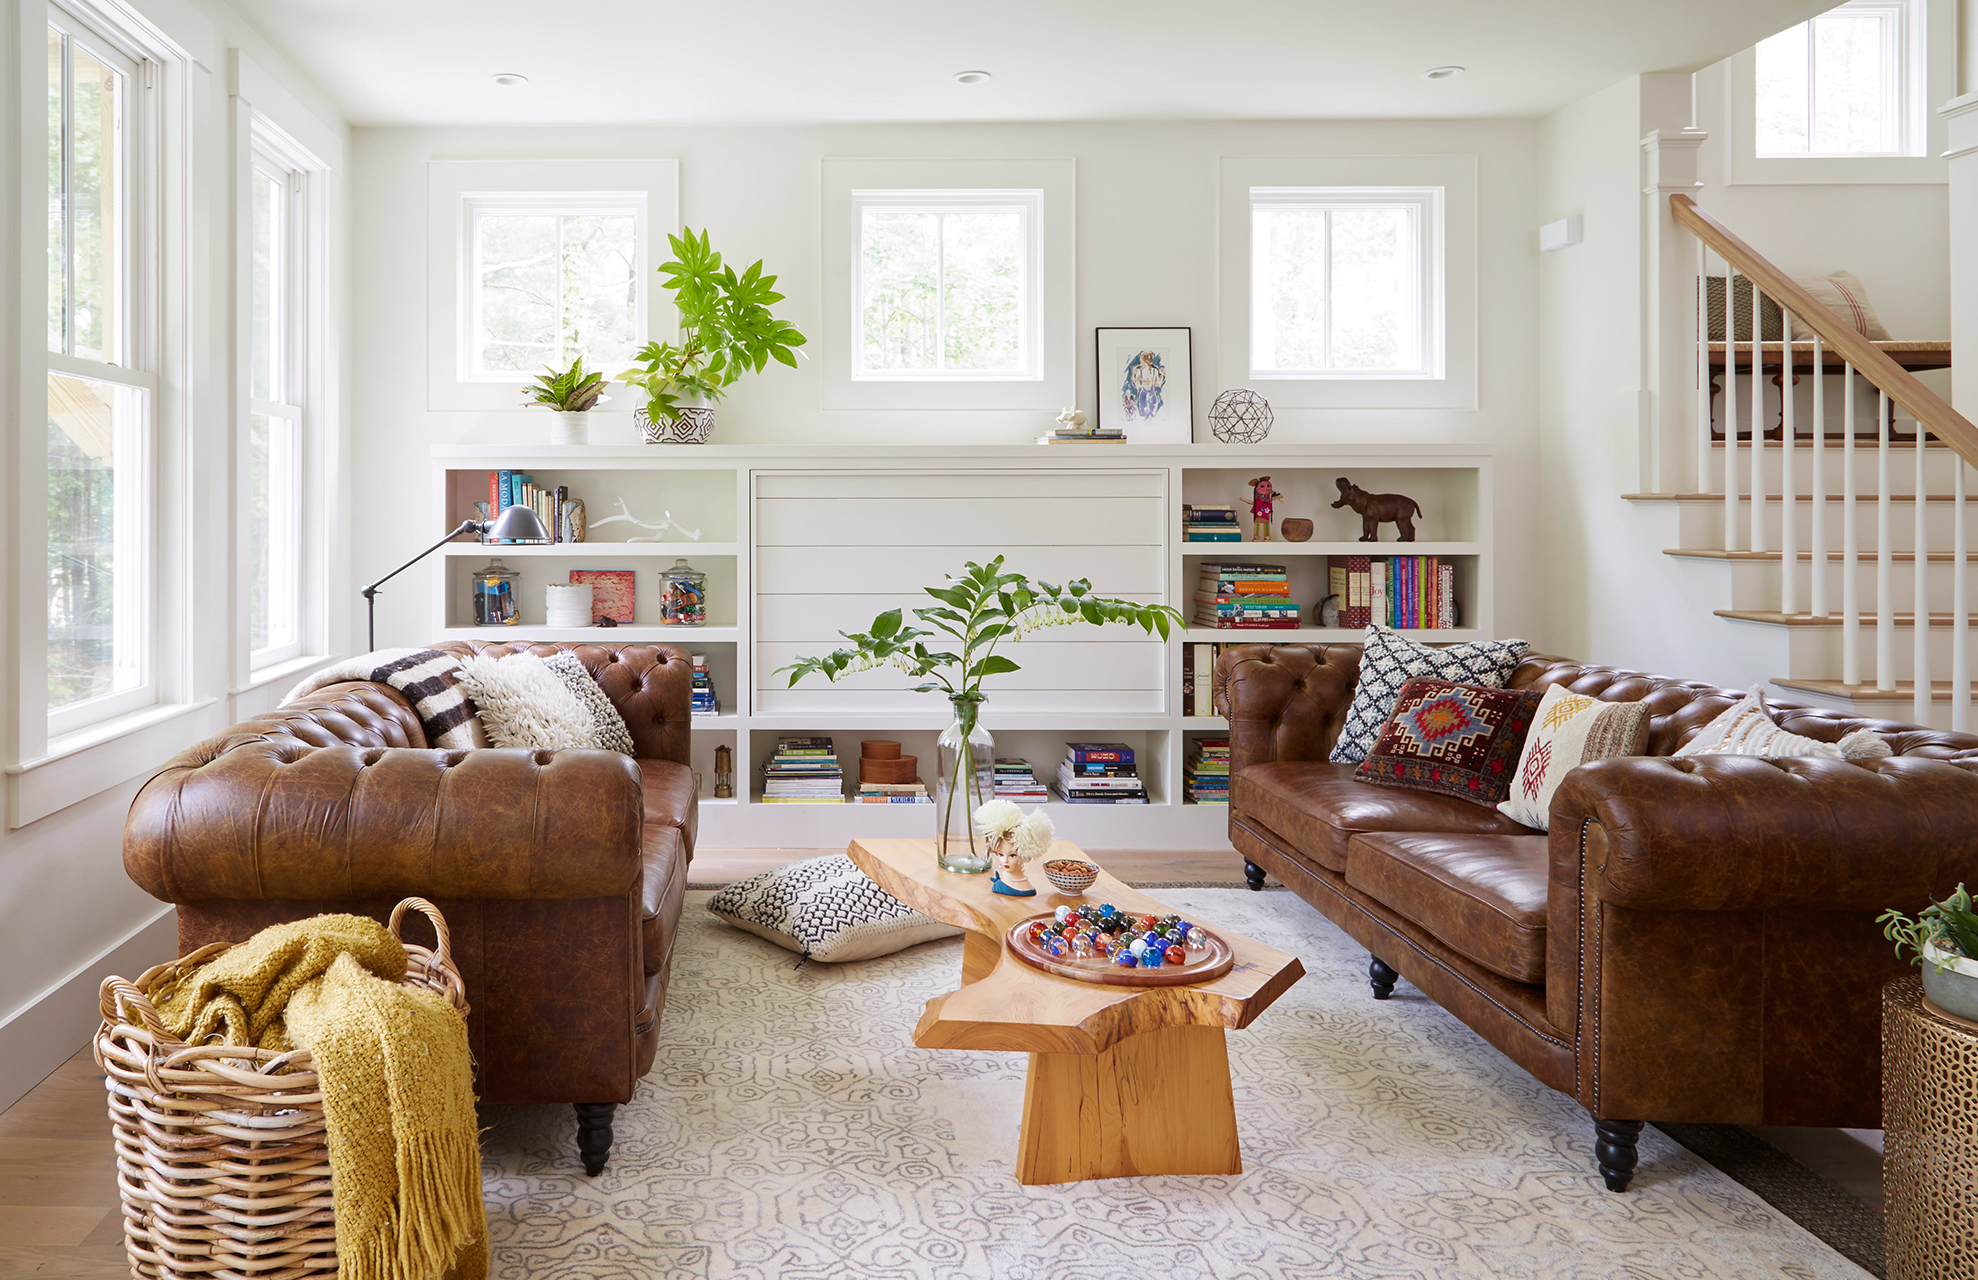 Living room decorating and design better homes gardens - How can i decorate my small living room ...